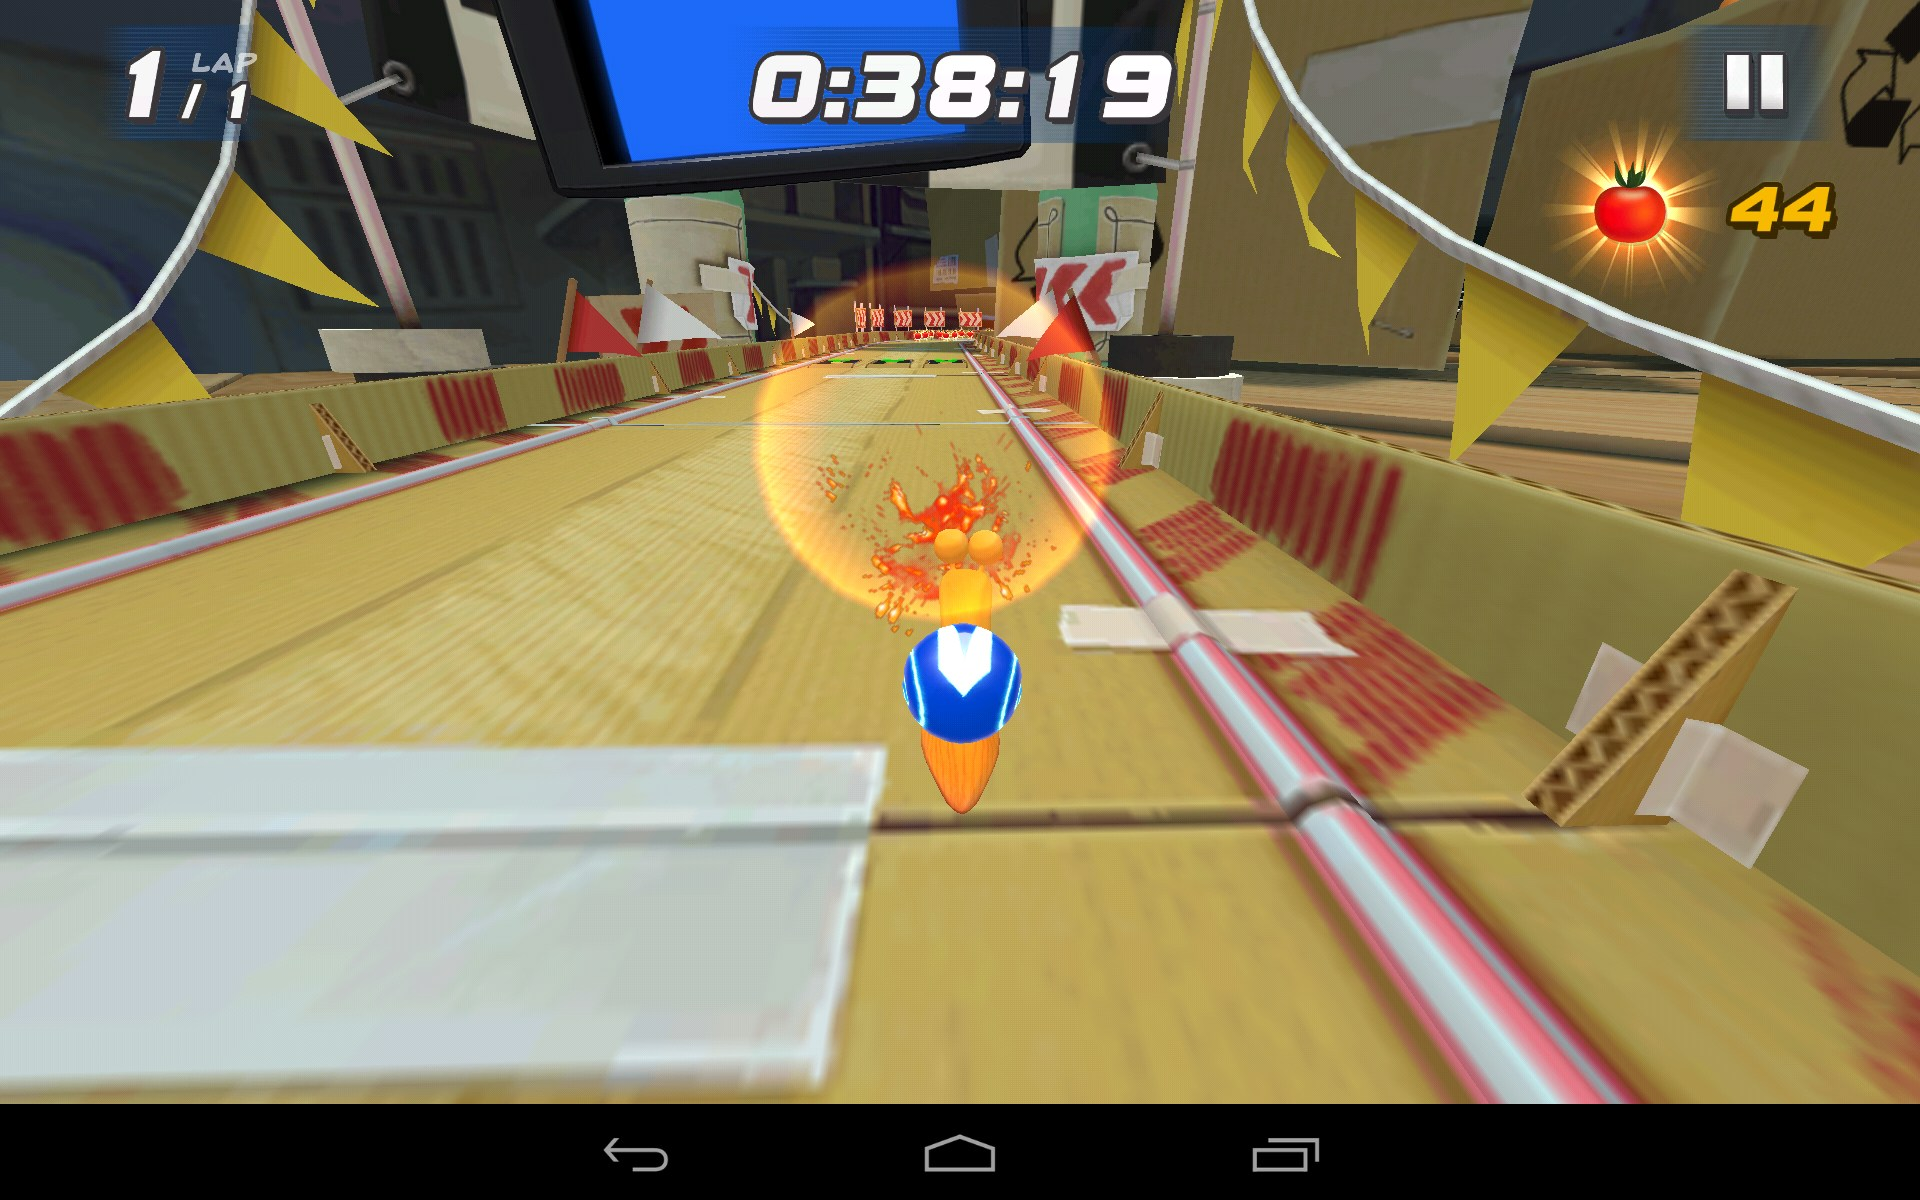 Turbo Racing Car app in PC - Download for Windows 7, 8, 10 ...